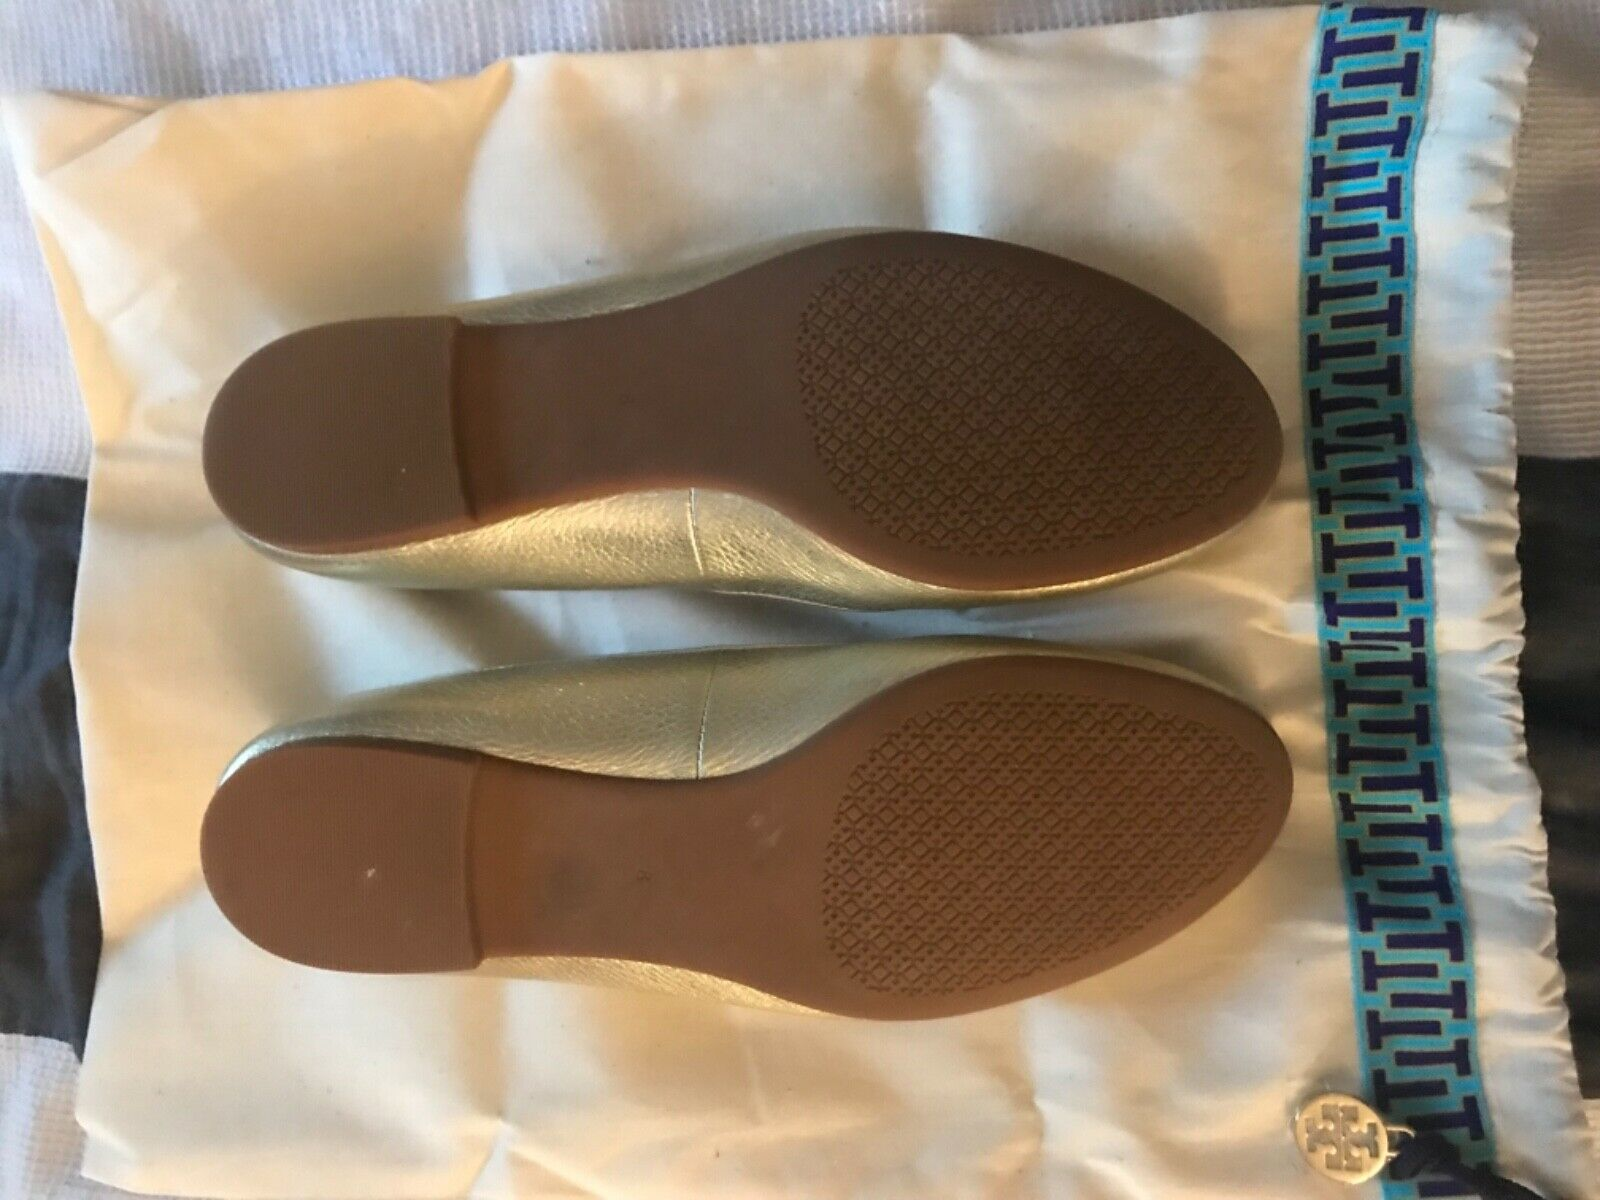 Tory Burch Claire Ballerina Flat - image 2